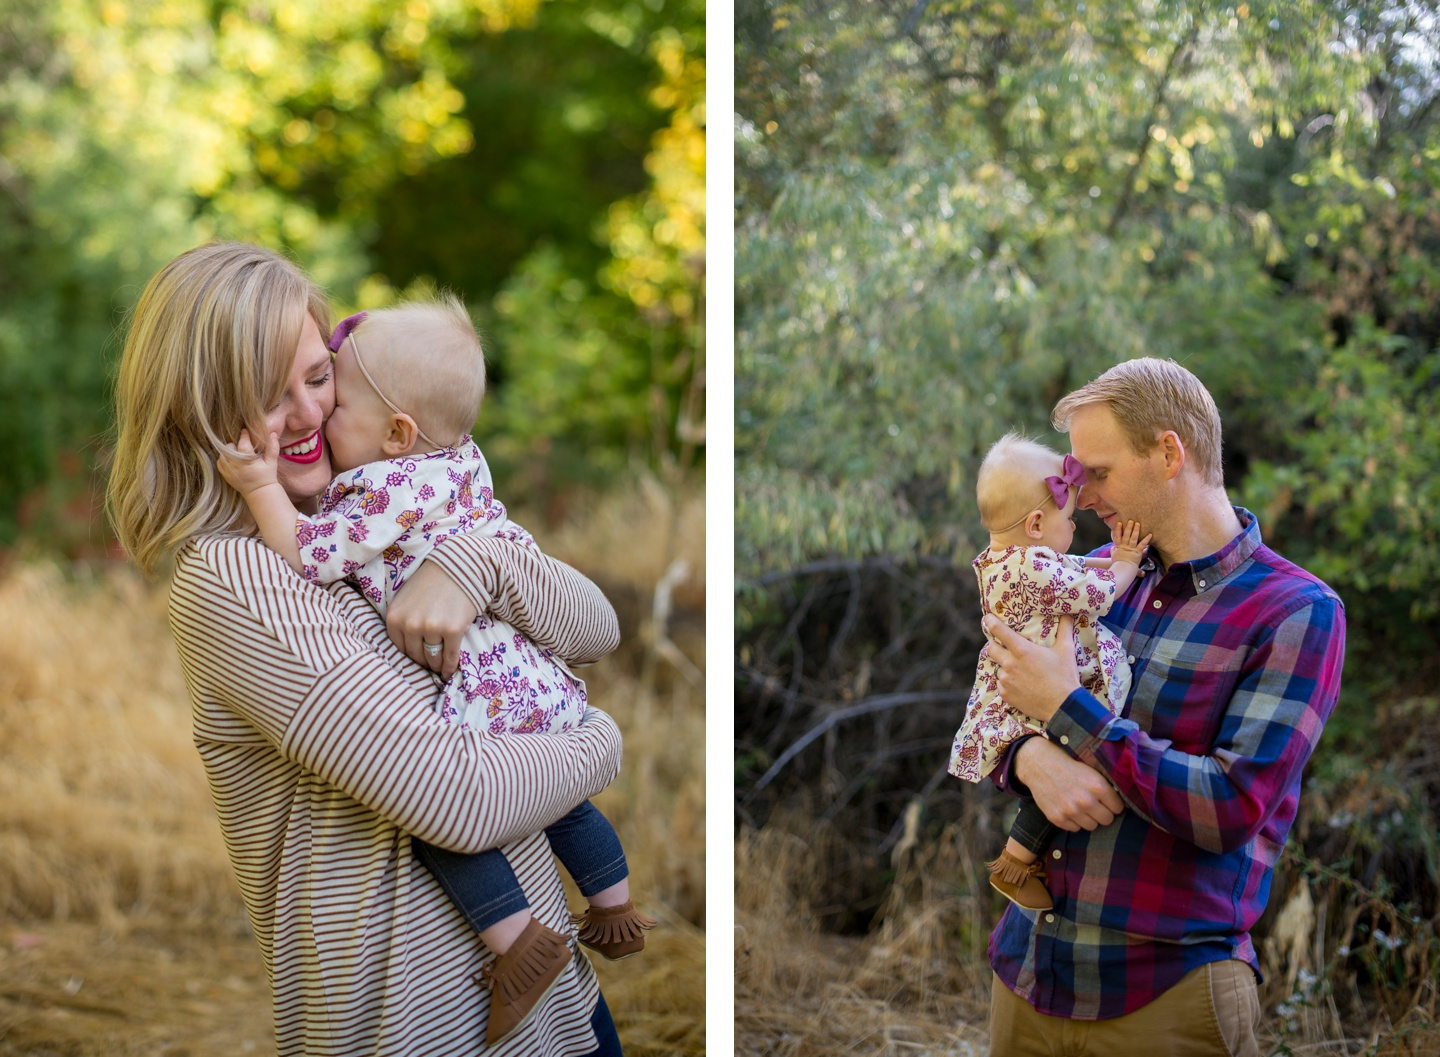 Soper family photoshoot by The Aperture Company Photographers in Utah